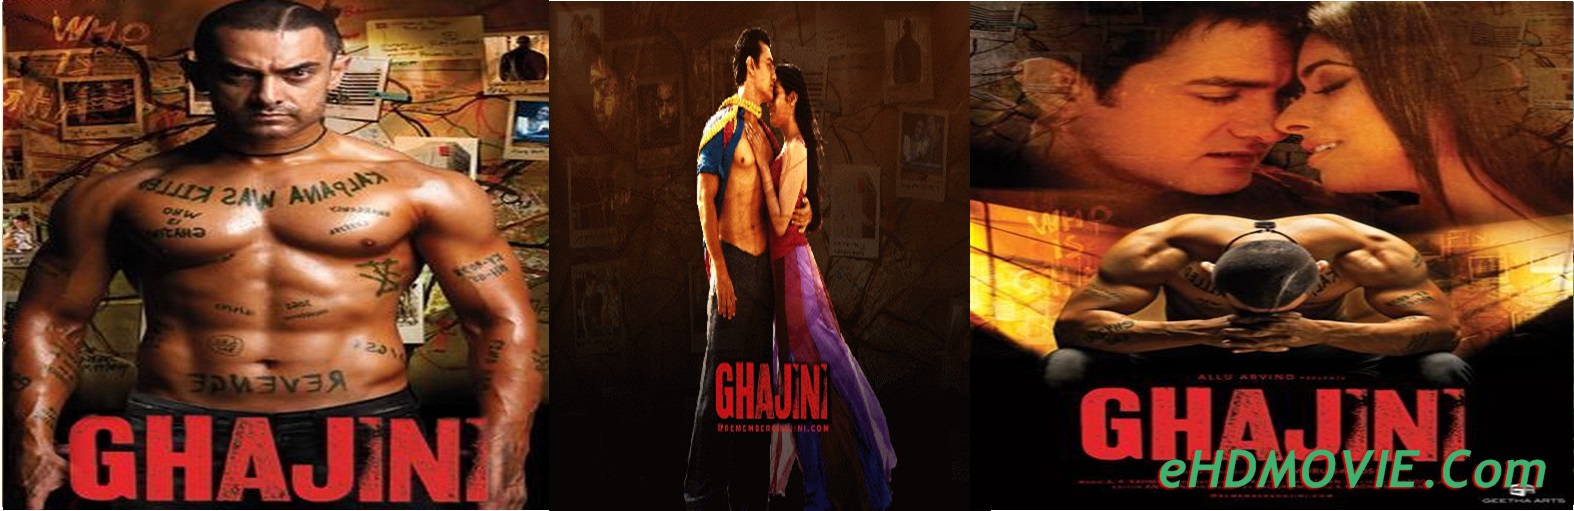 Ghajini 2008 Full Movie Hindi 720p - 480p ORG BRRip 650MB - 1.4GB ESubs Free Download